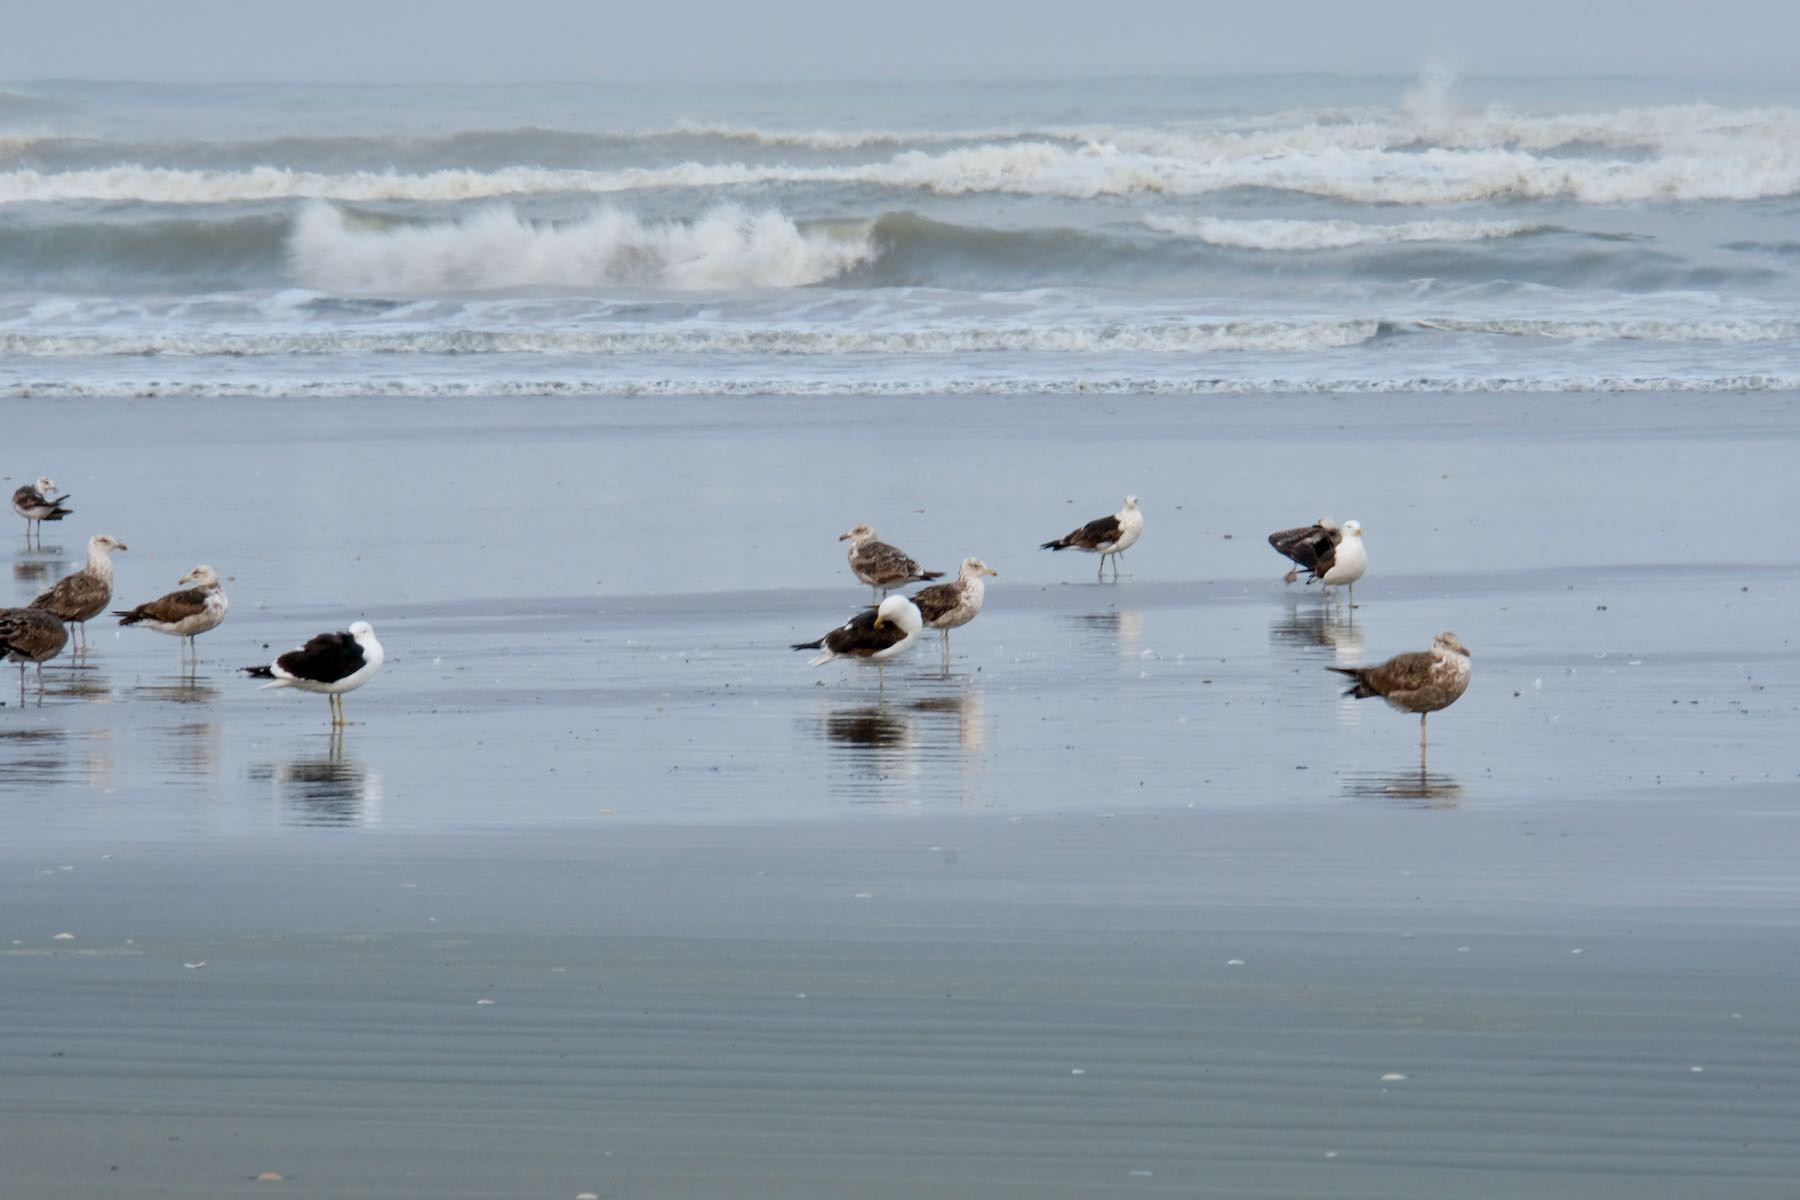 Black-backed gulls sitting by the sea.